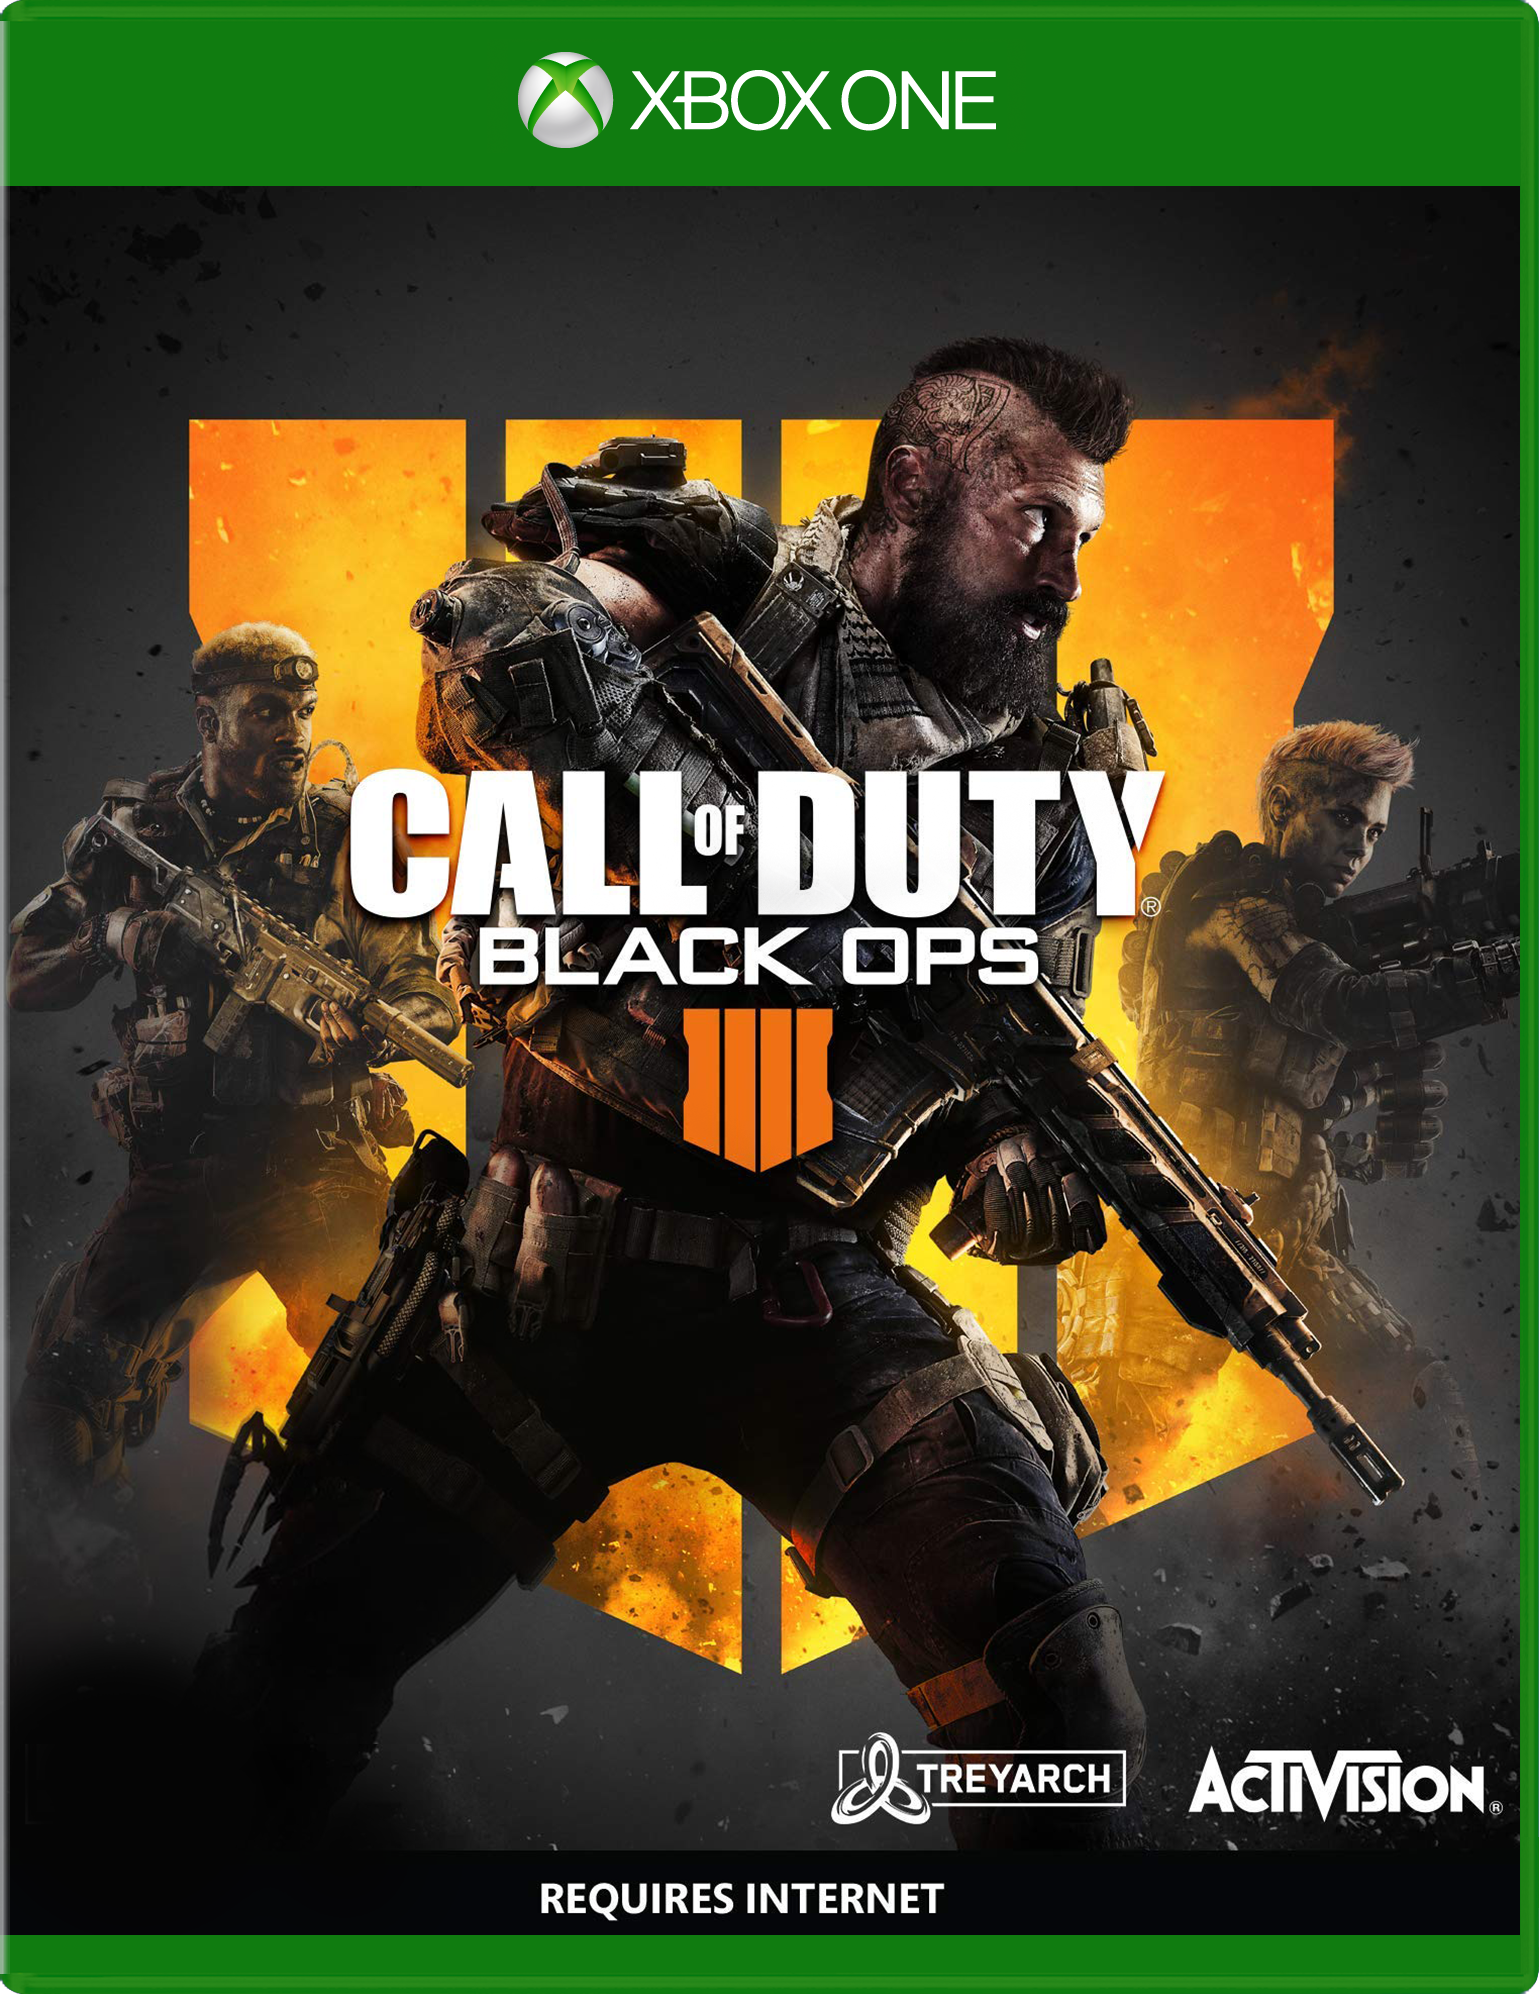 Black Ops 1 PC matchmaking Global offensive matchmaking mislyktes